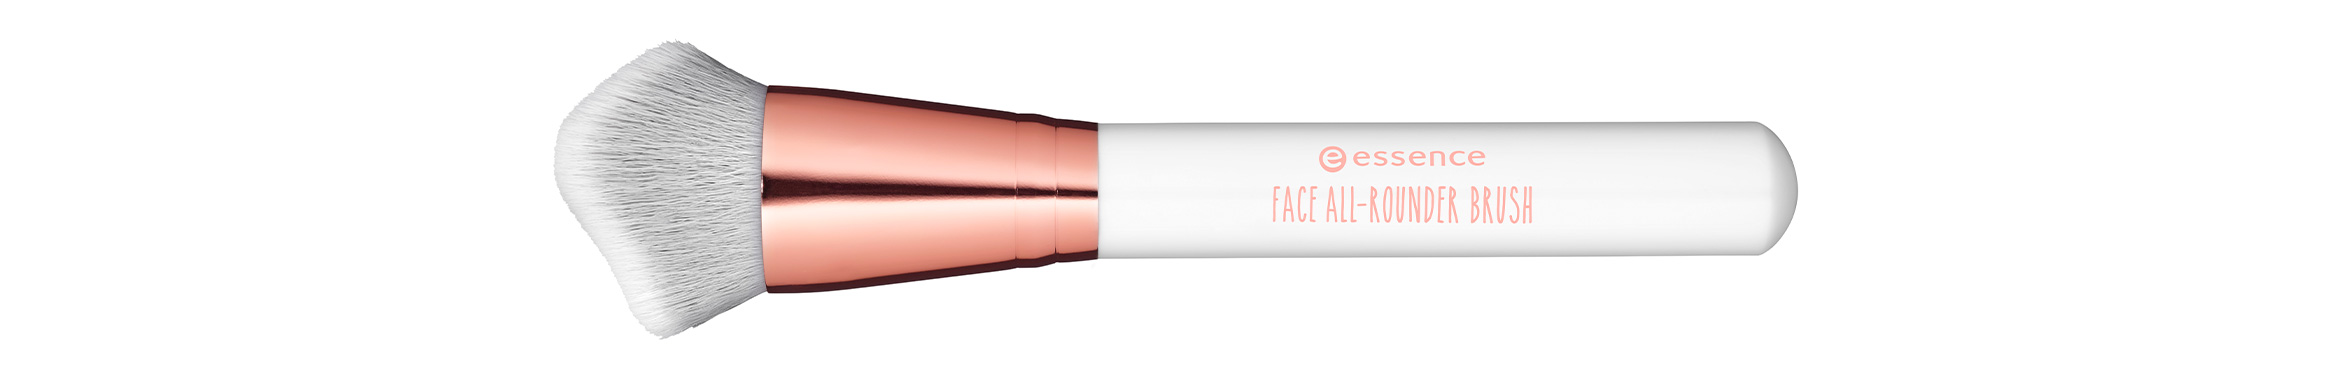 essence-face-all-rounderbrush-collectie-2019